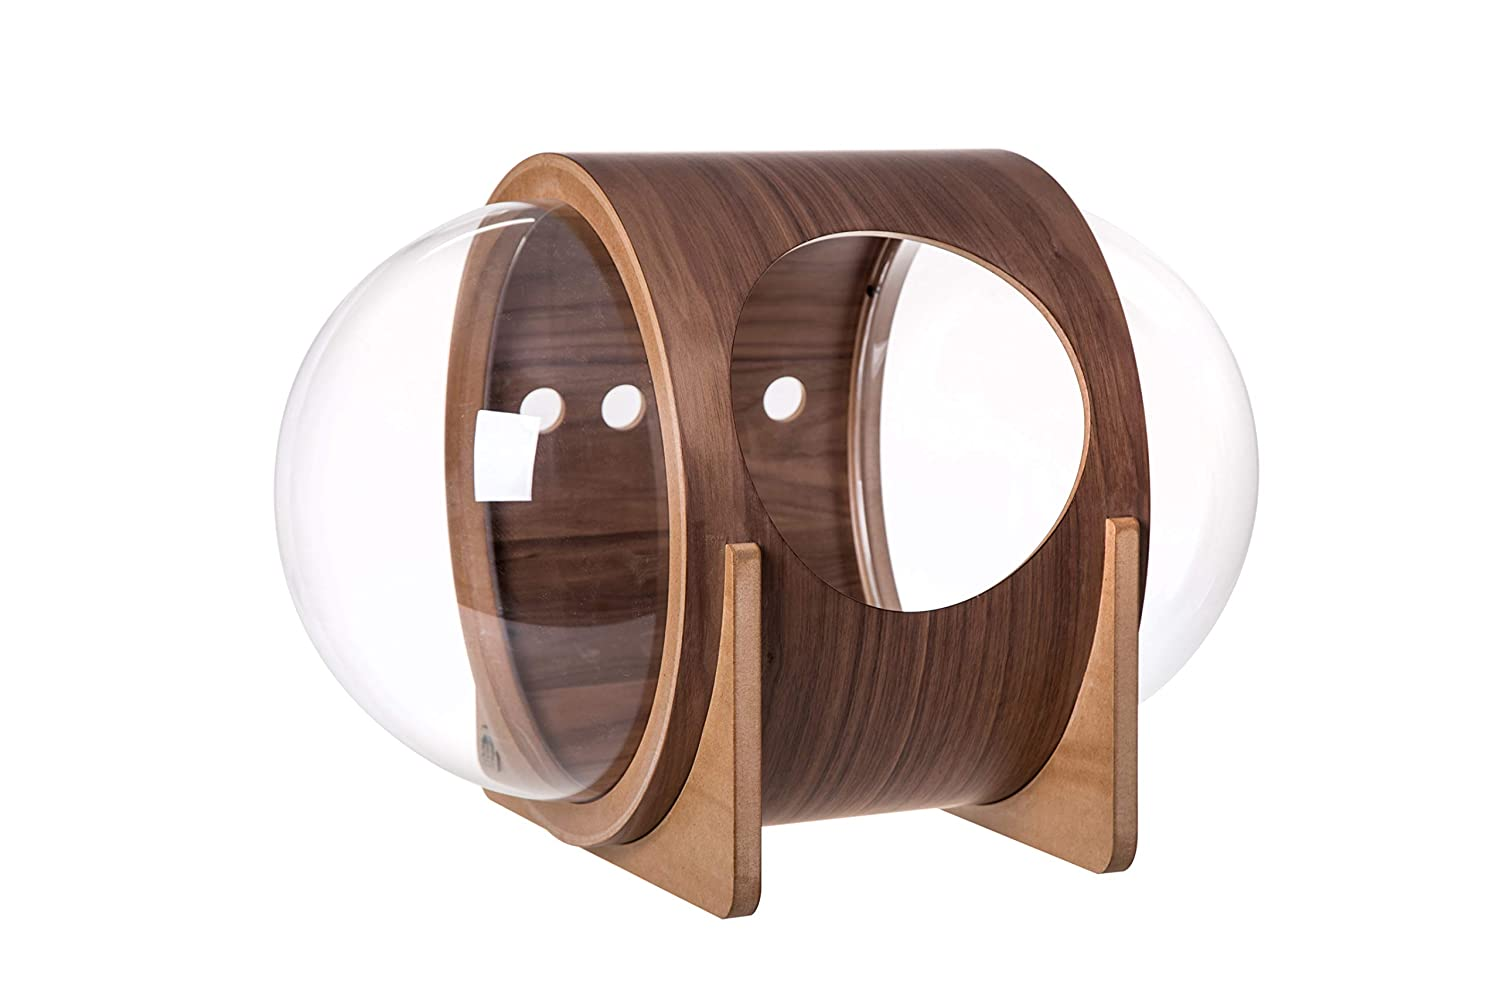 Walnut MYZOO Spaceship Alpha, Warm and Cozy Pet Bed for Cat & Dog, Designed Furniture, Made of Wood (Walnut)